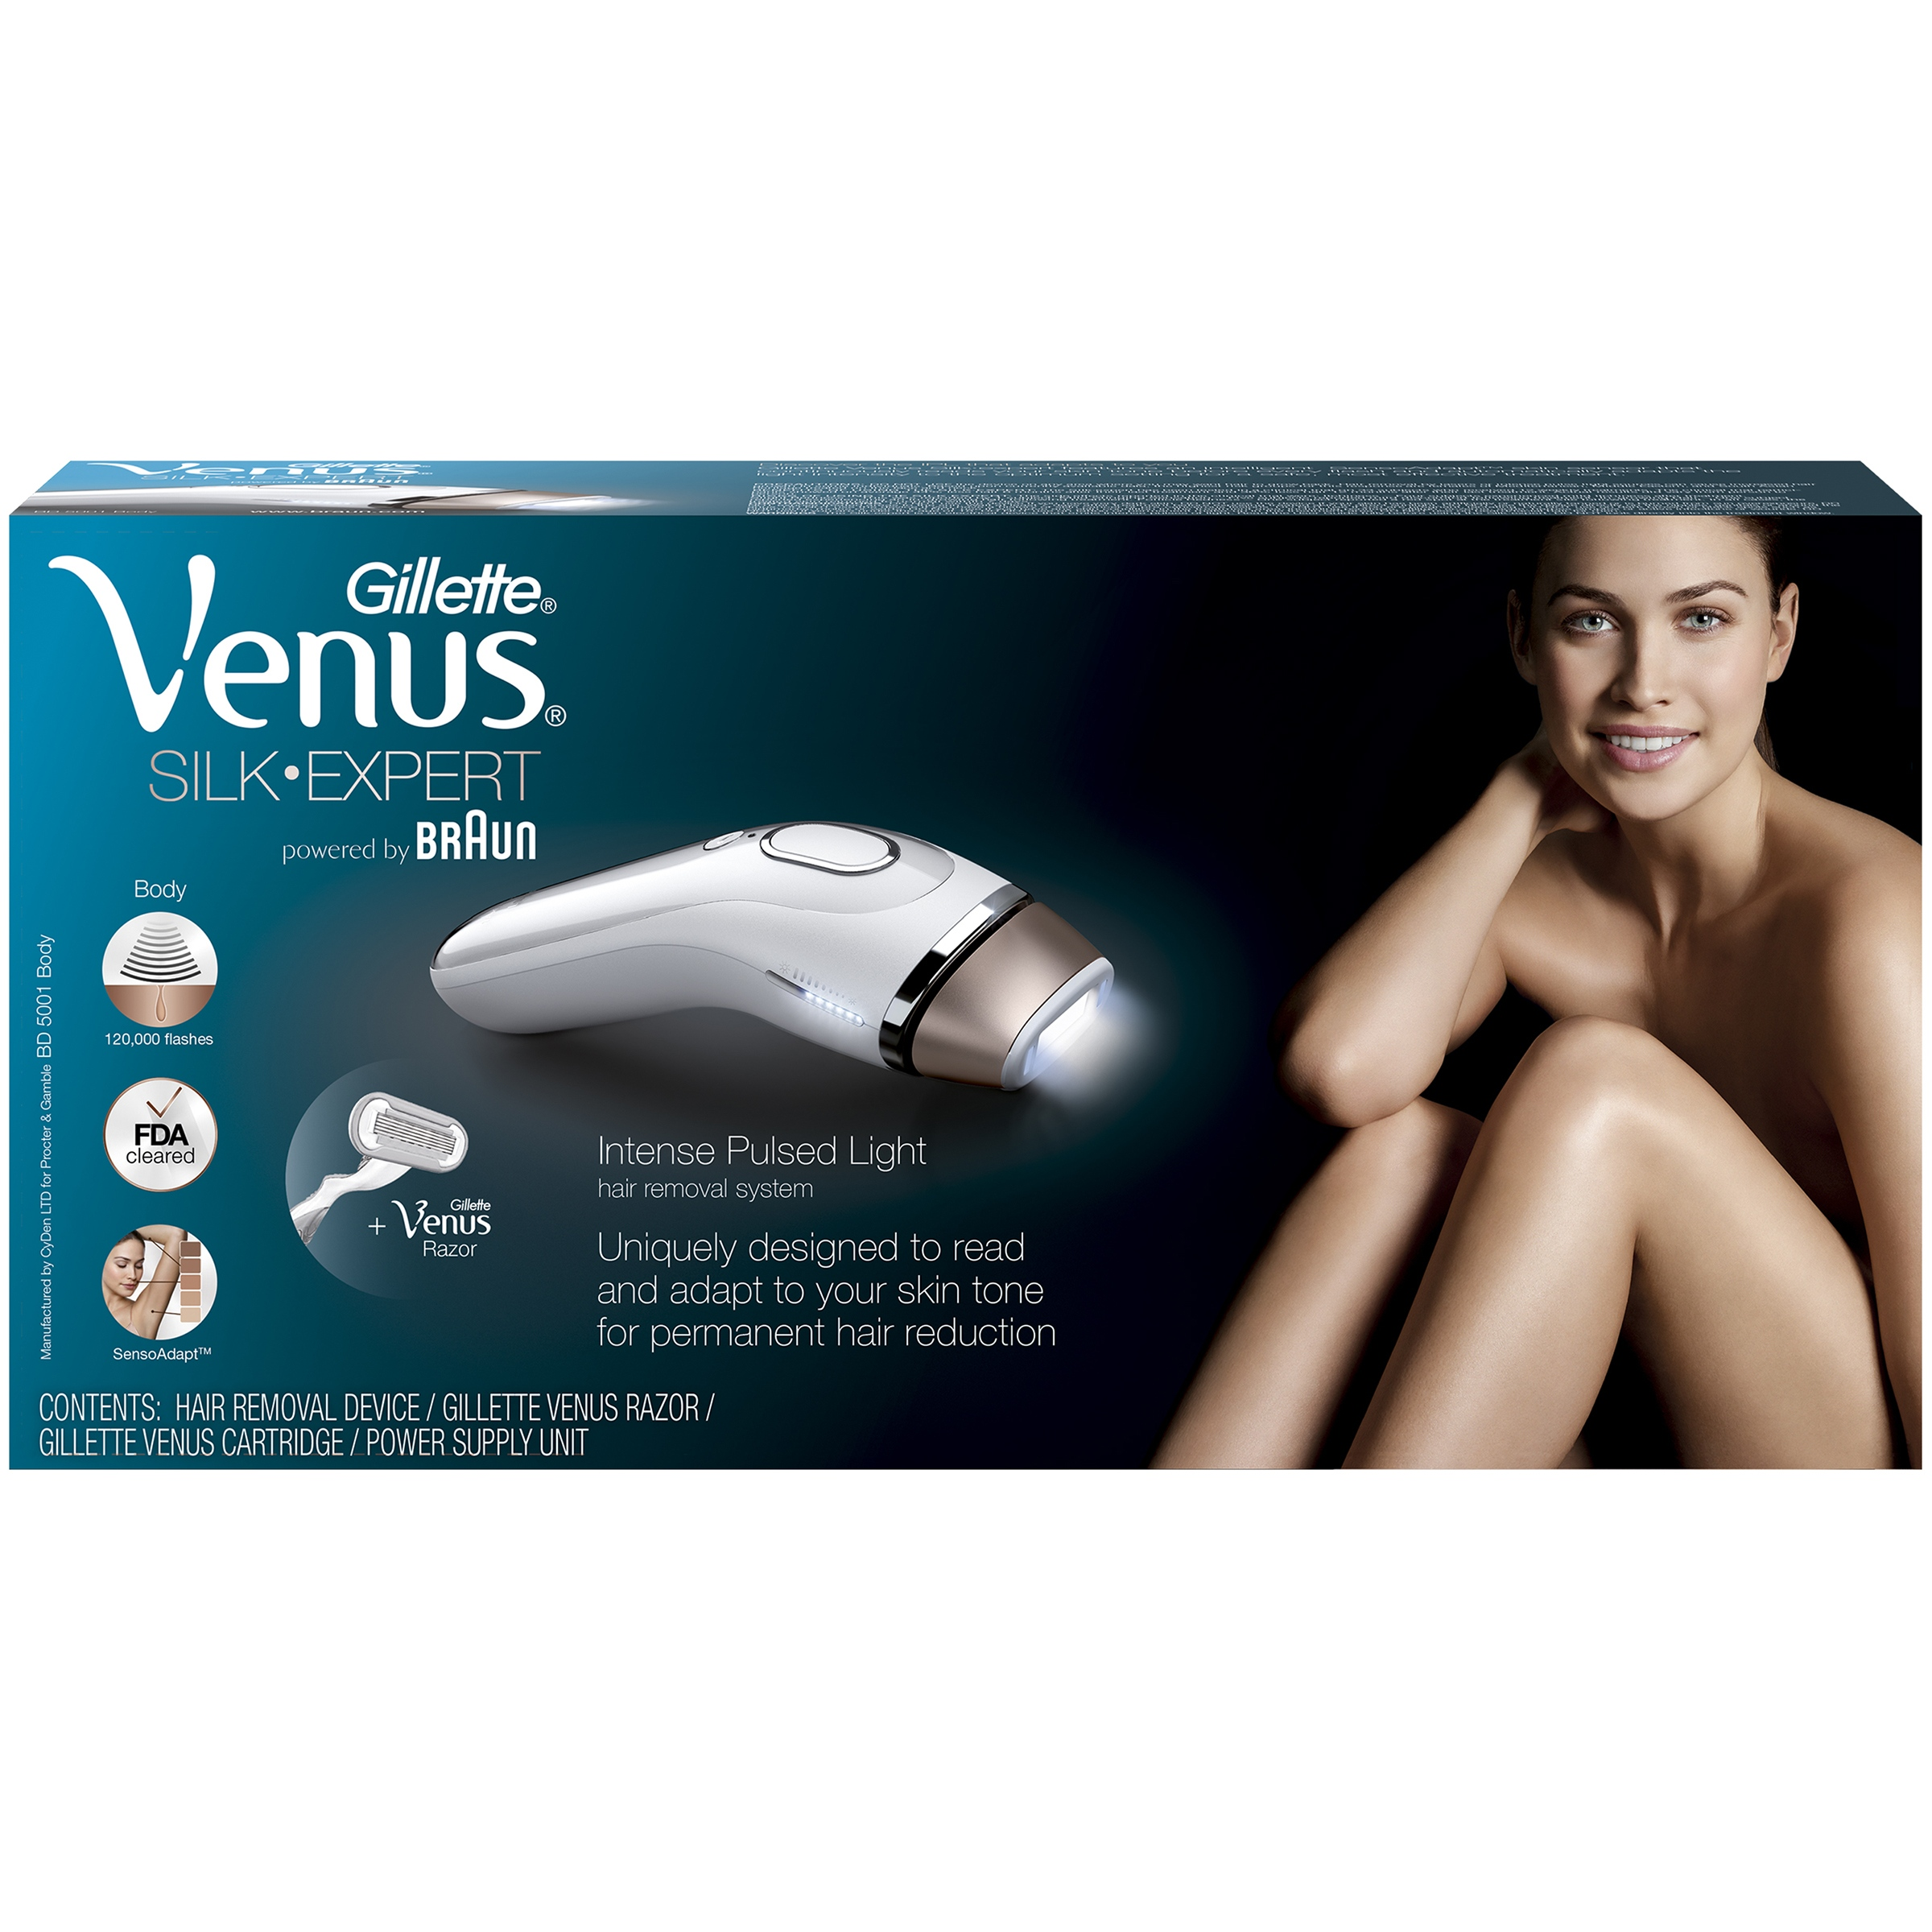 Gillette Venus Silk Expert Ipl 5001 Intense Pulsed Light Body